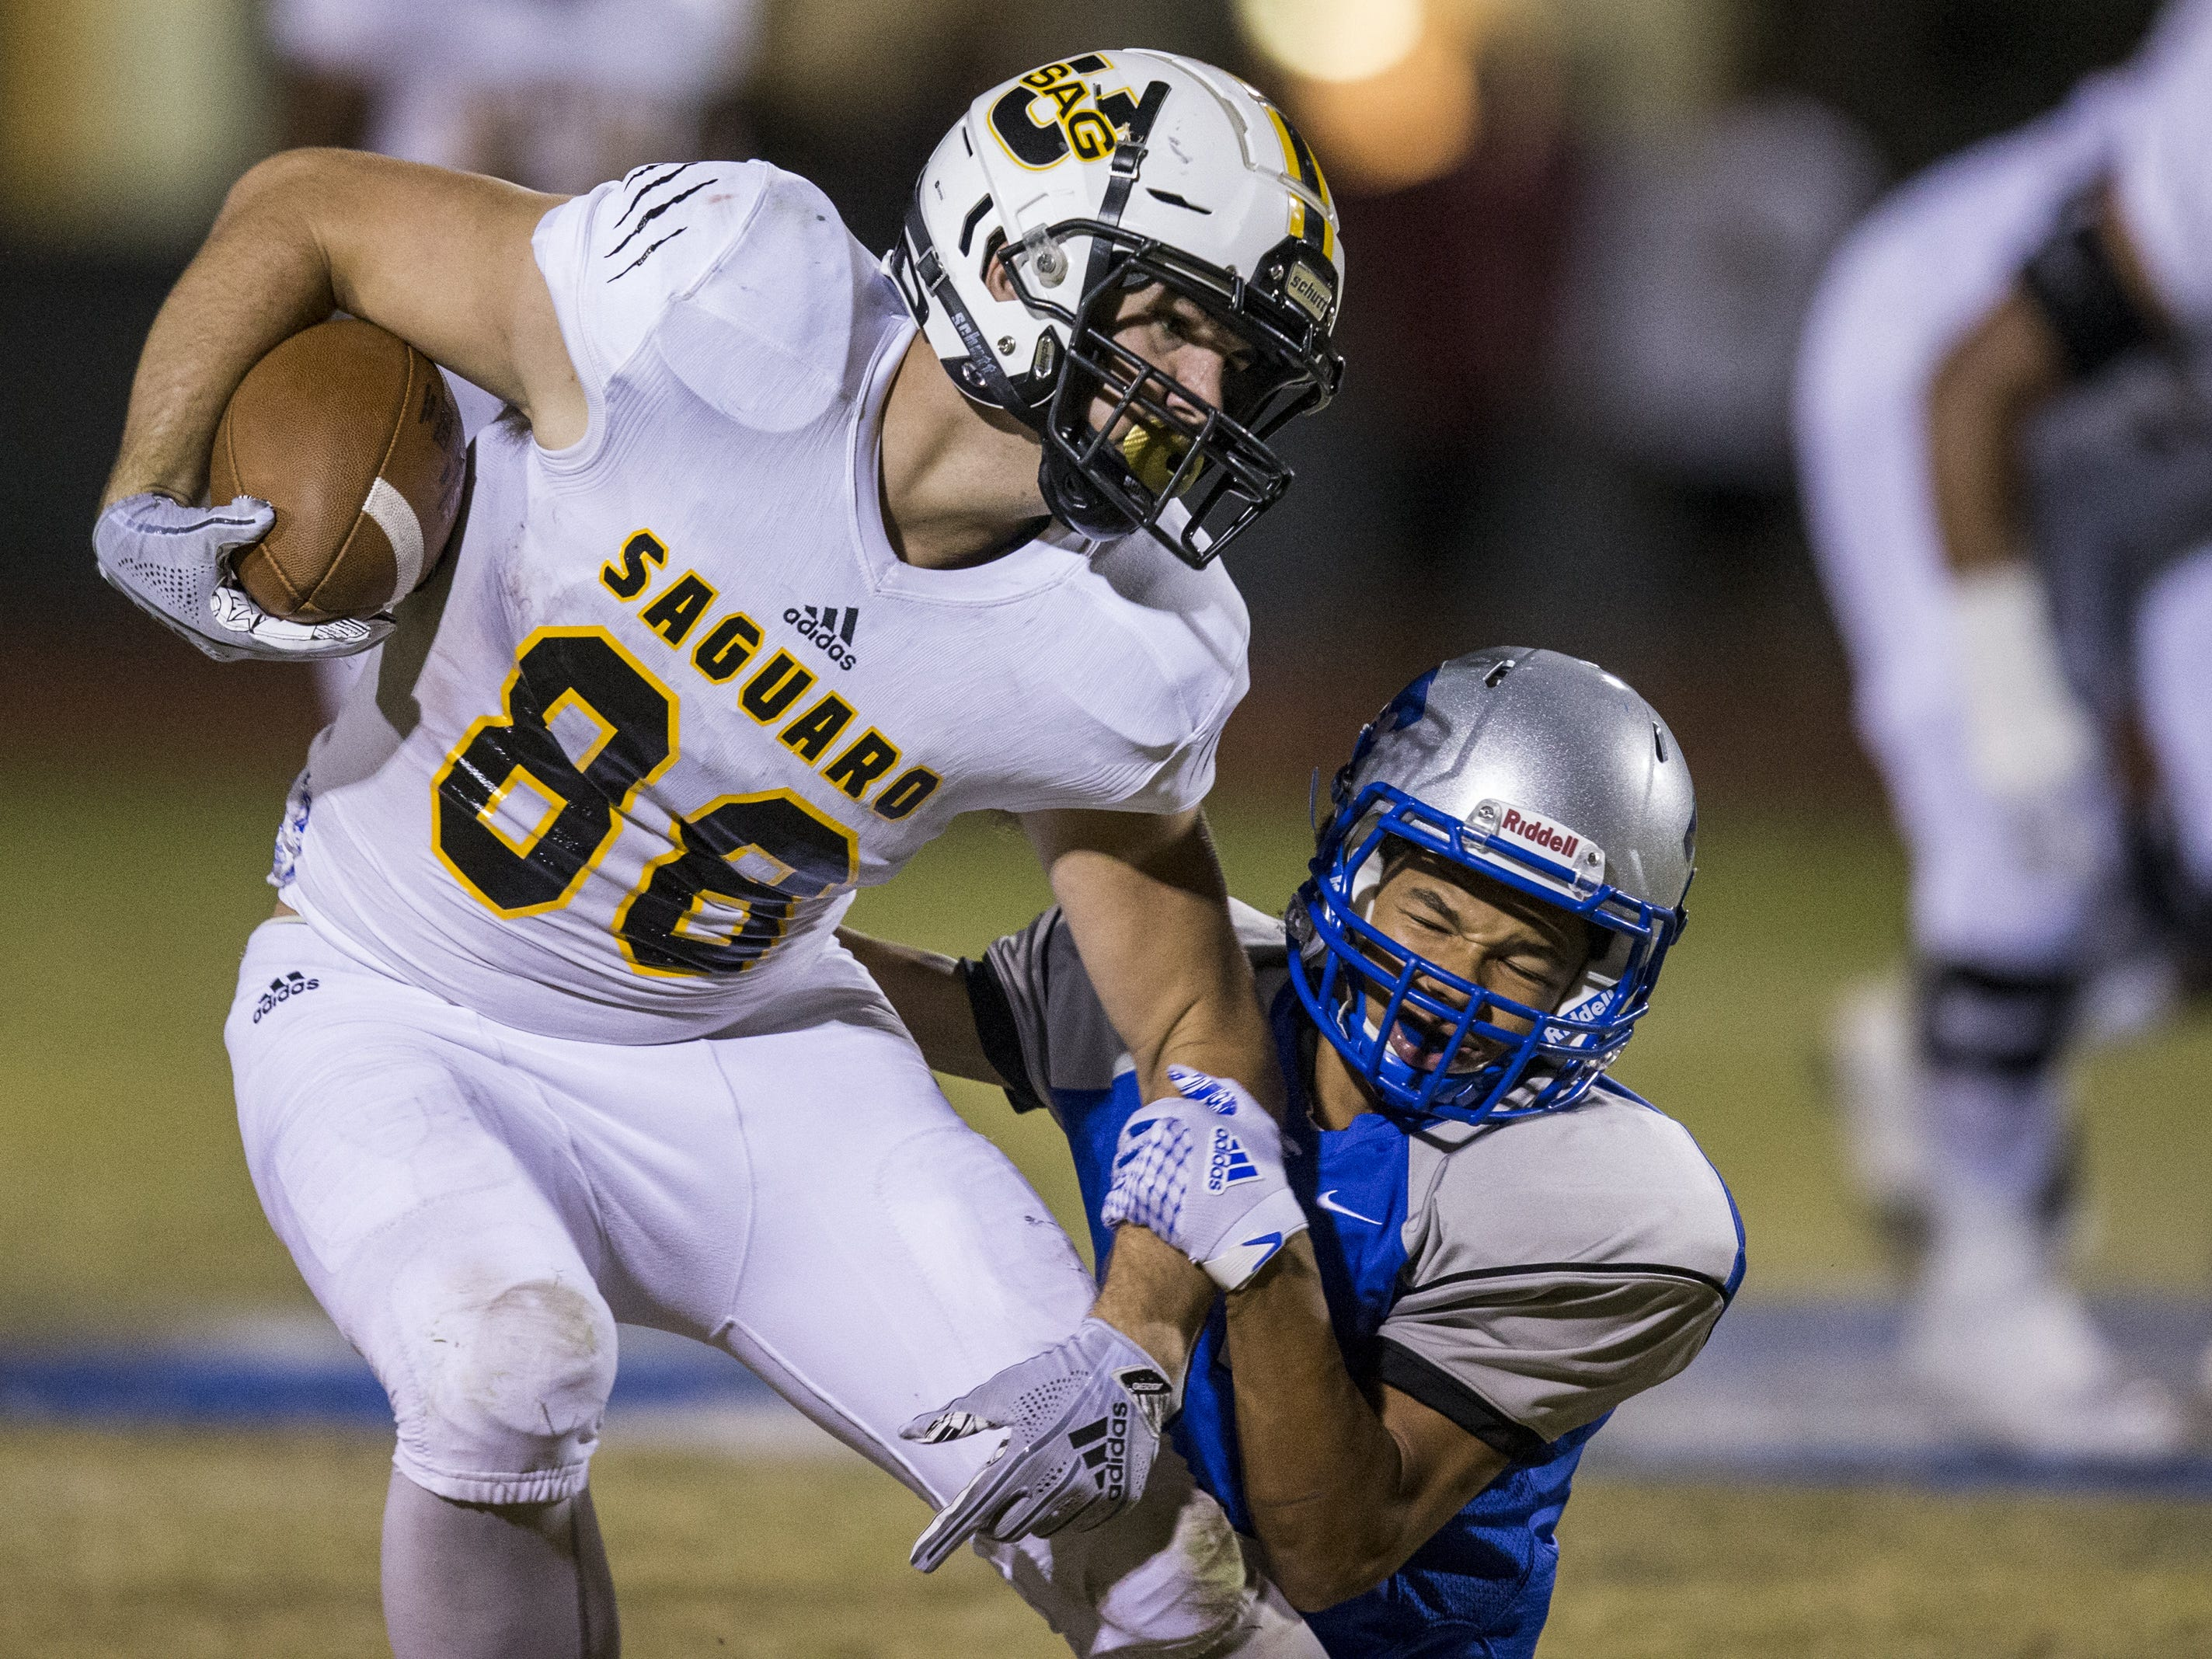 Saguaro's Hayden Hatten runs after a reception against Mesquite in the first half on Friday, Oct. 26, 2018, at Mesquite High School in Gilbert, Ariz.  #azhsb